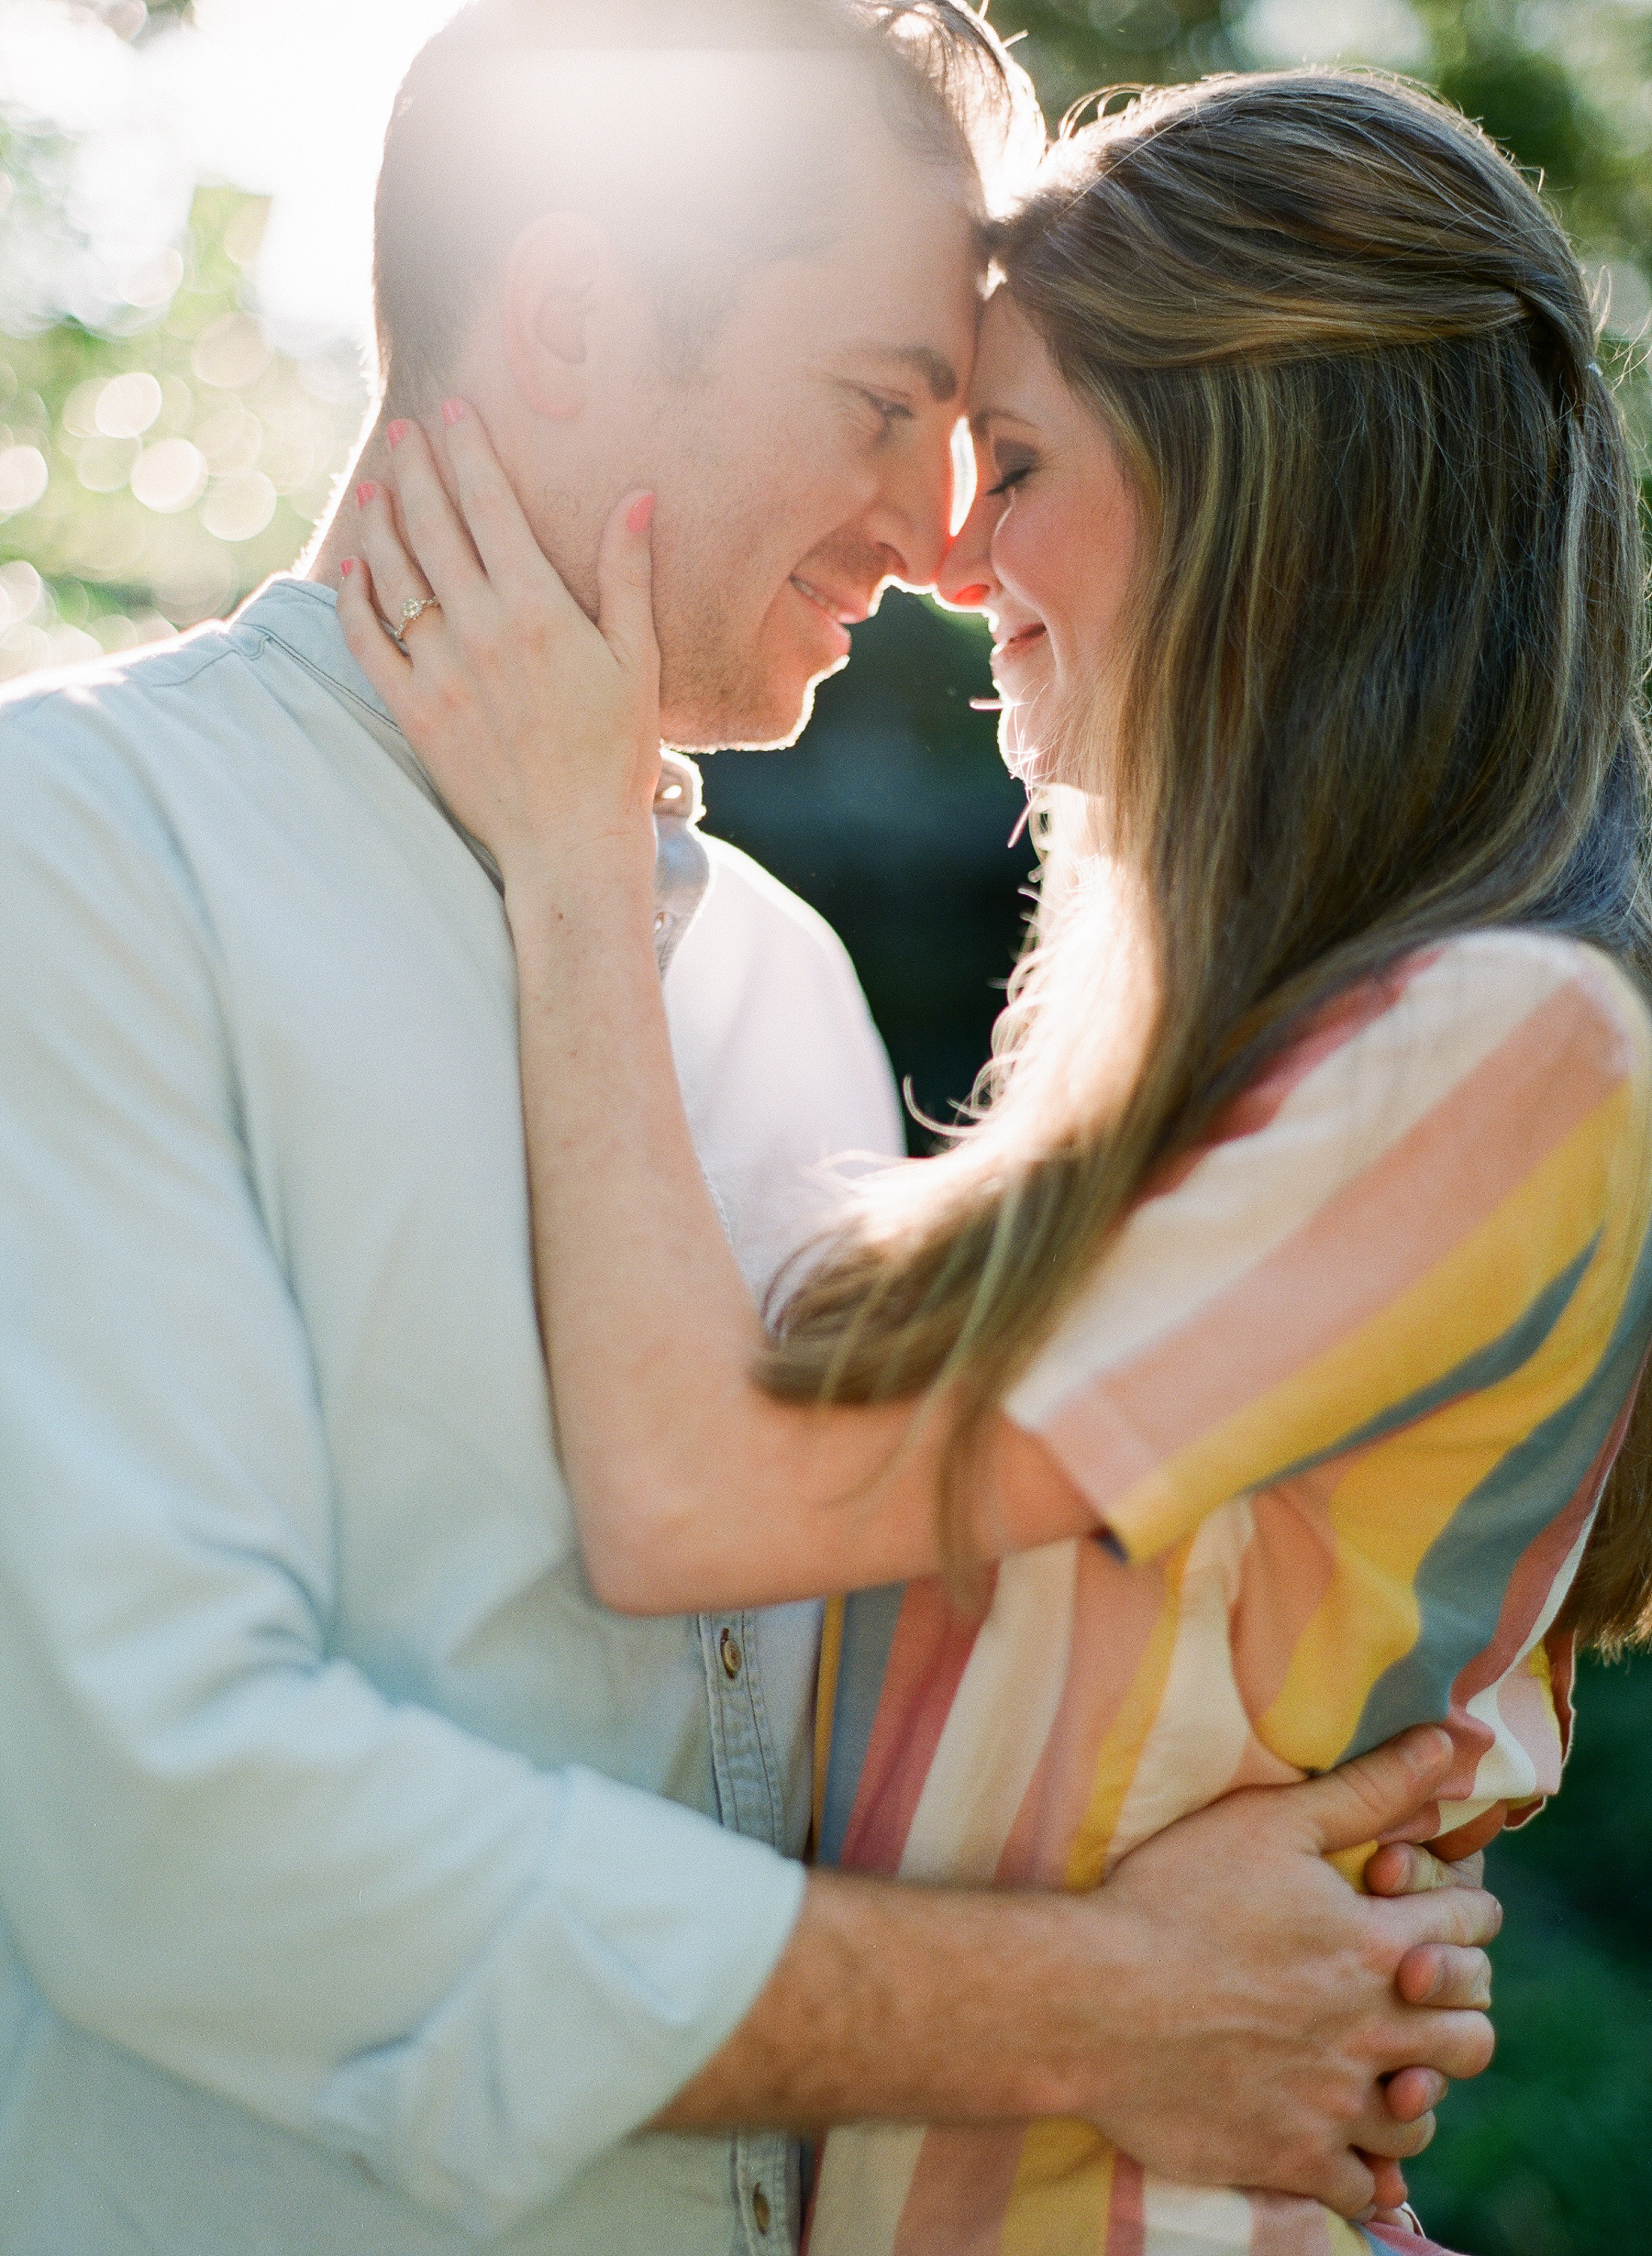 CO_engaged_SB (39 of 44).jpg